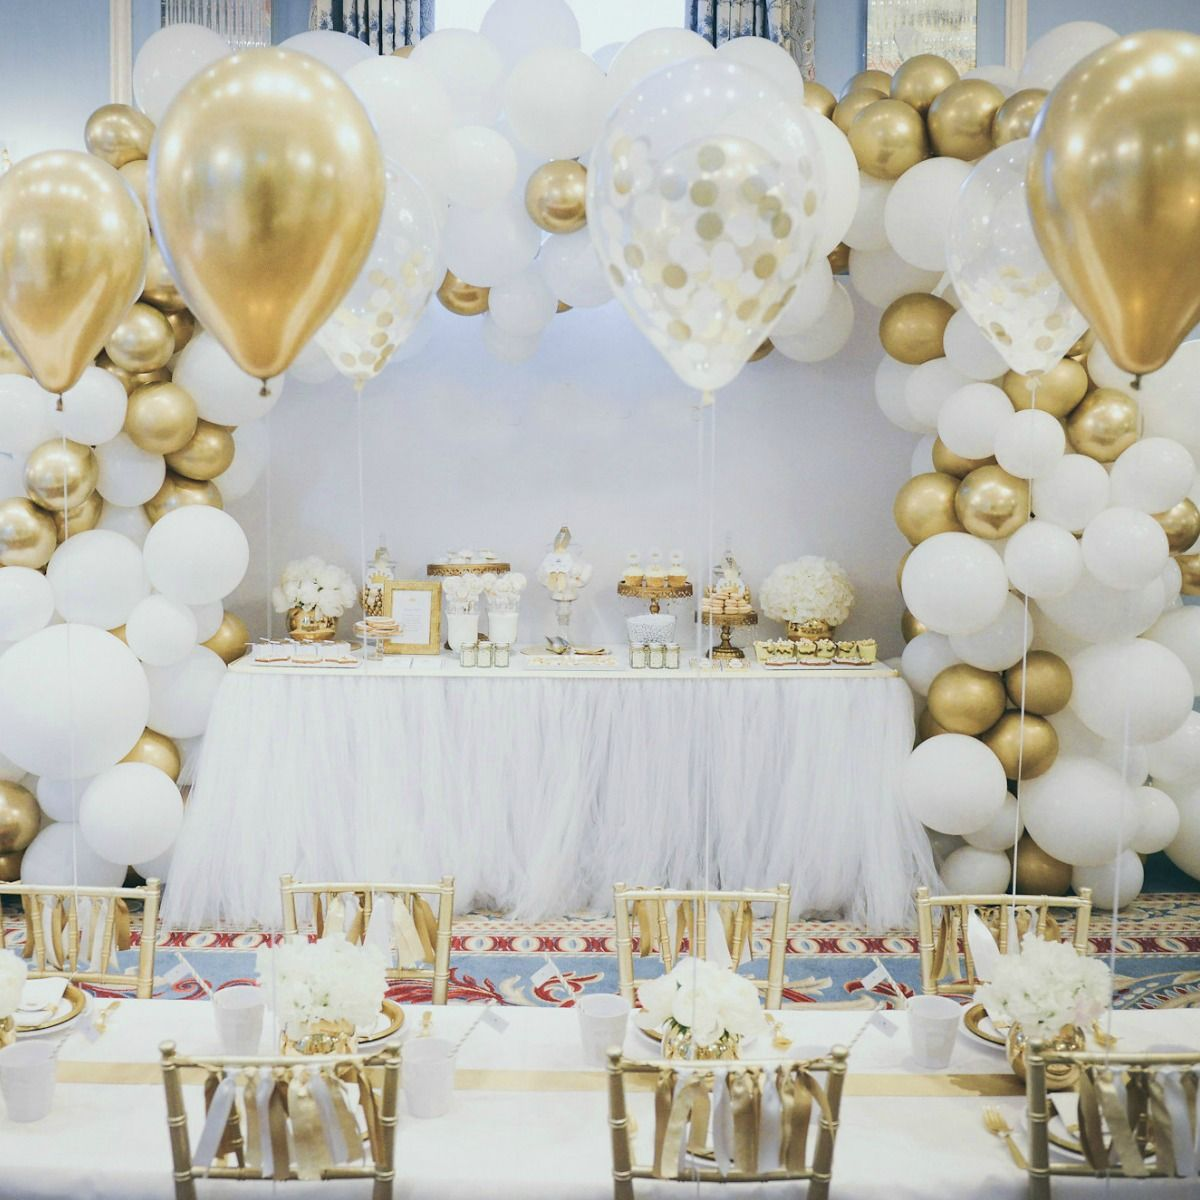 Stunning Confetti Diy Chrome Gold White Balloon Garland Kit